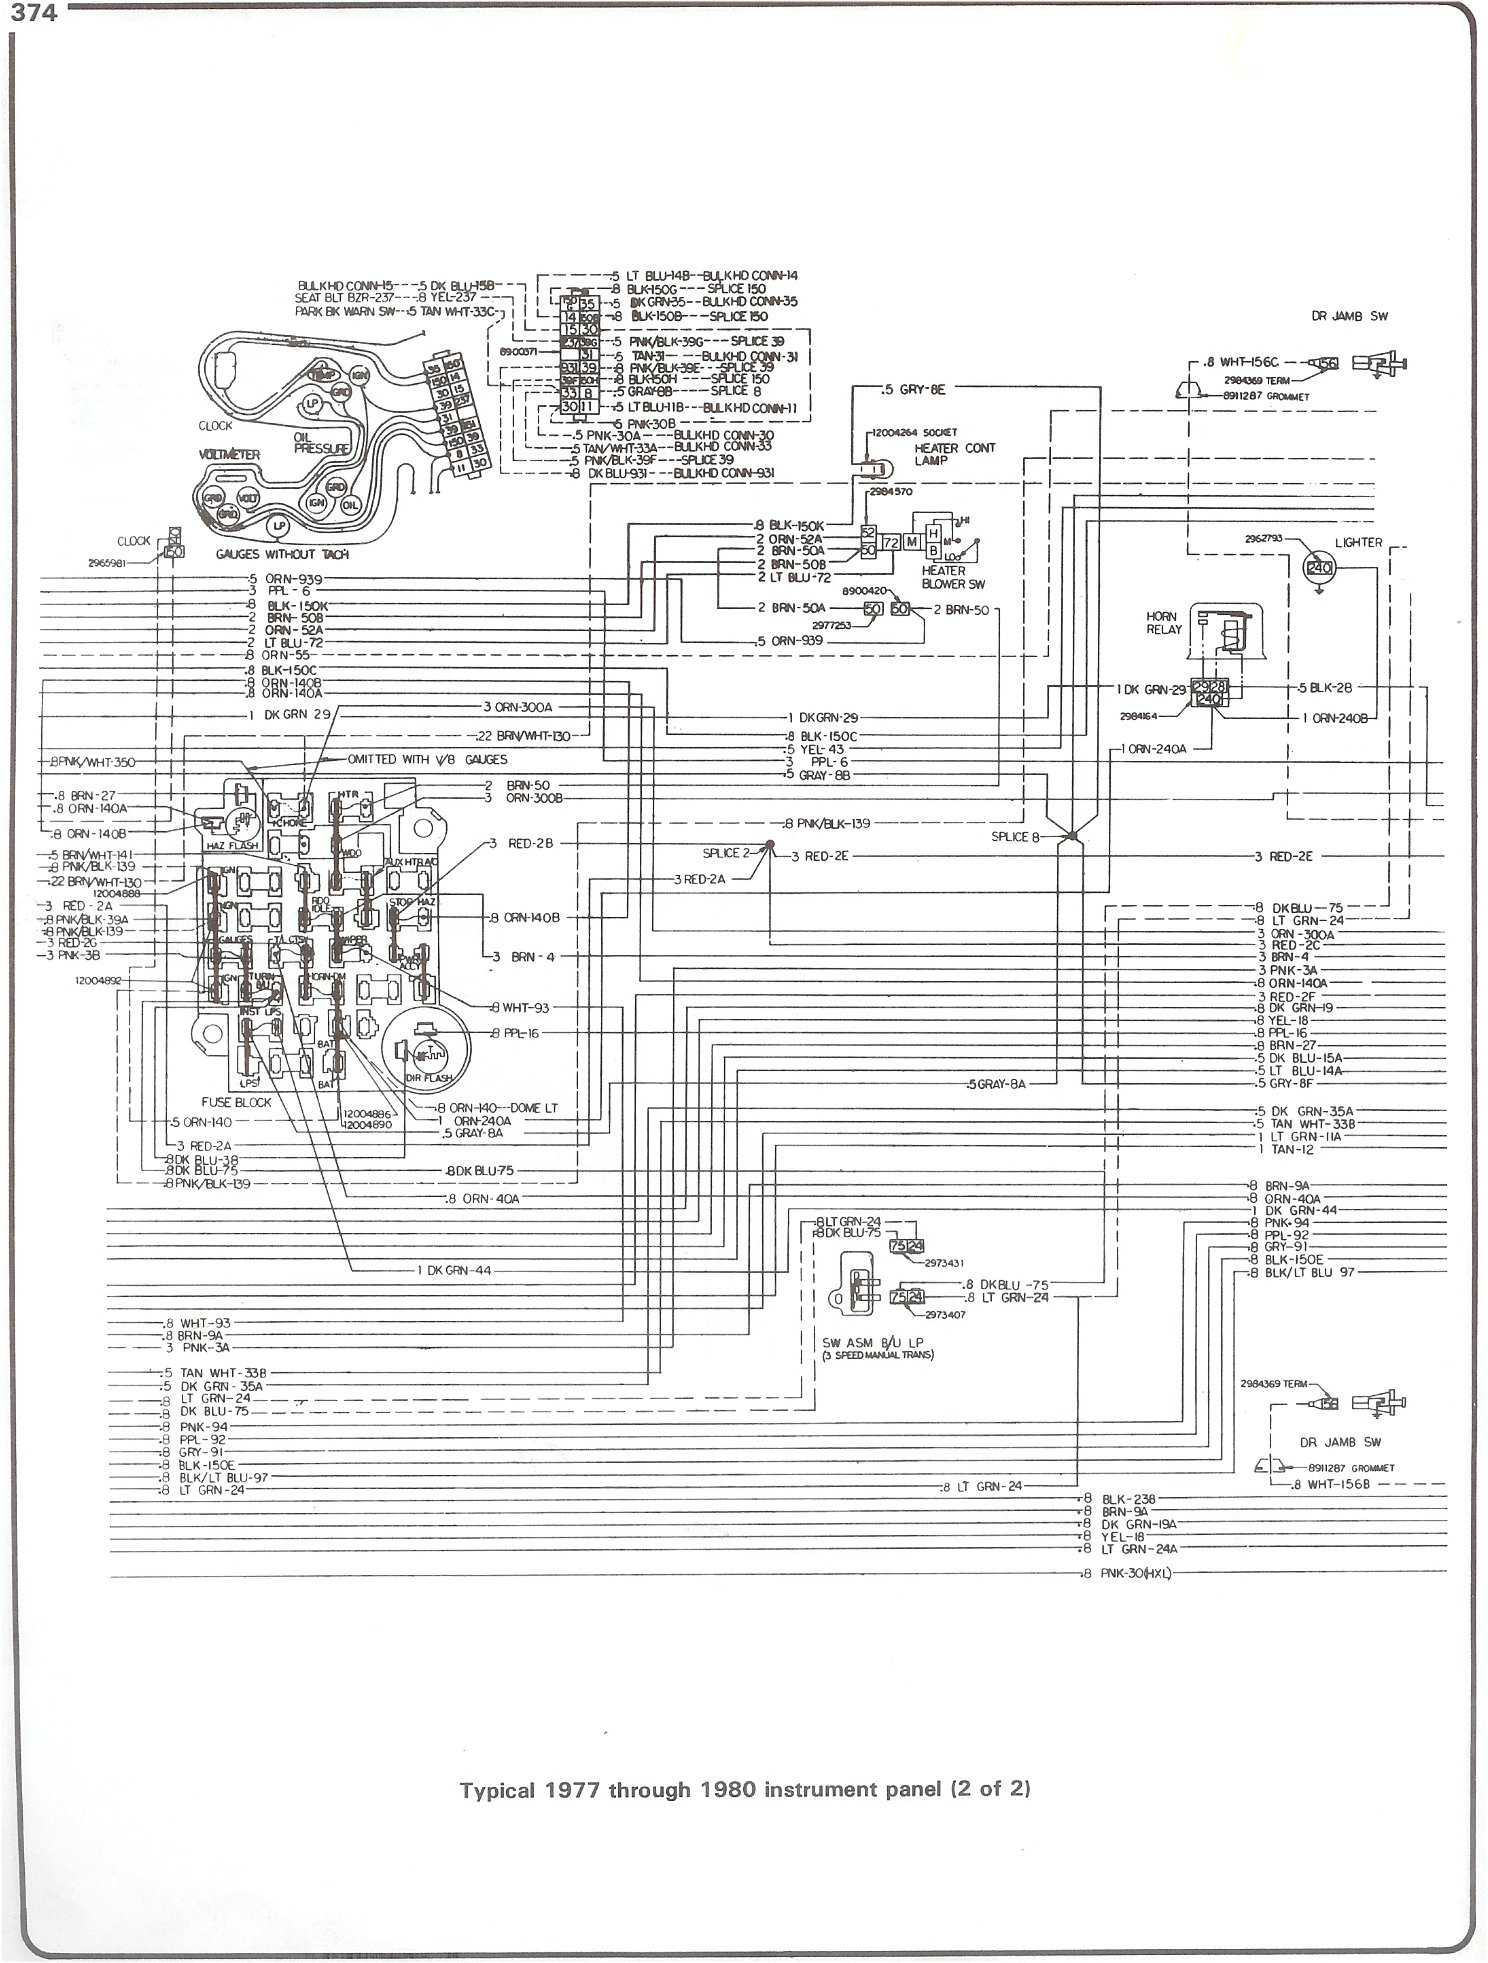 77 80_instrument_pg2 complete 73 87 wiring diagrams 1988-98 gm-c/k series wiring schematic at gsmx.co